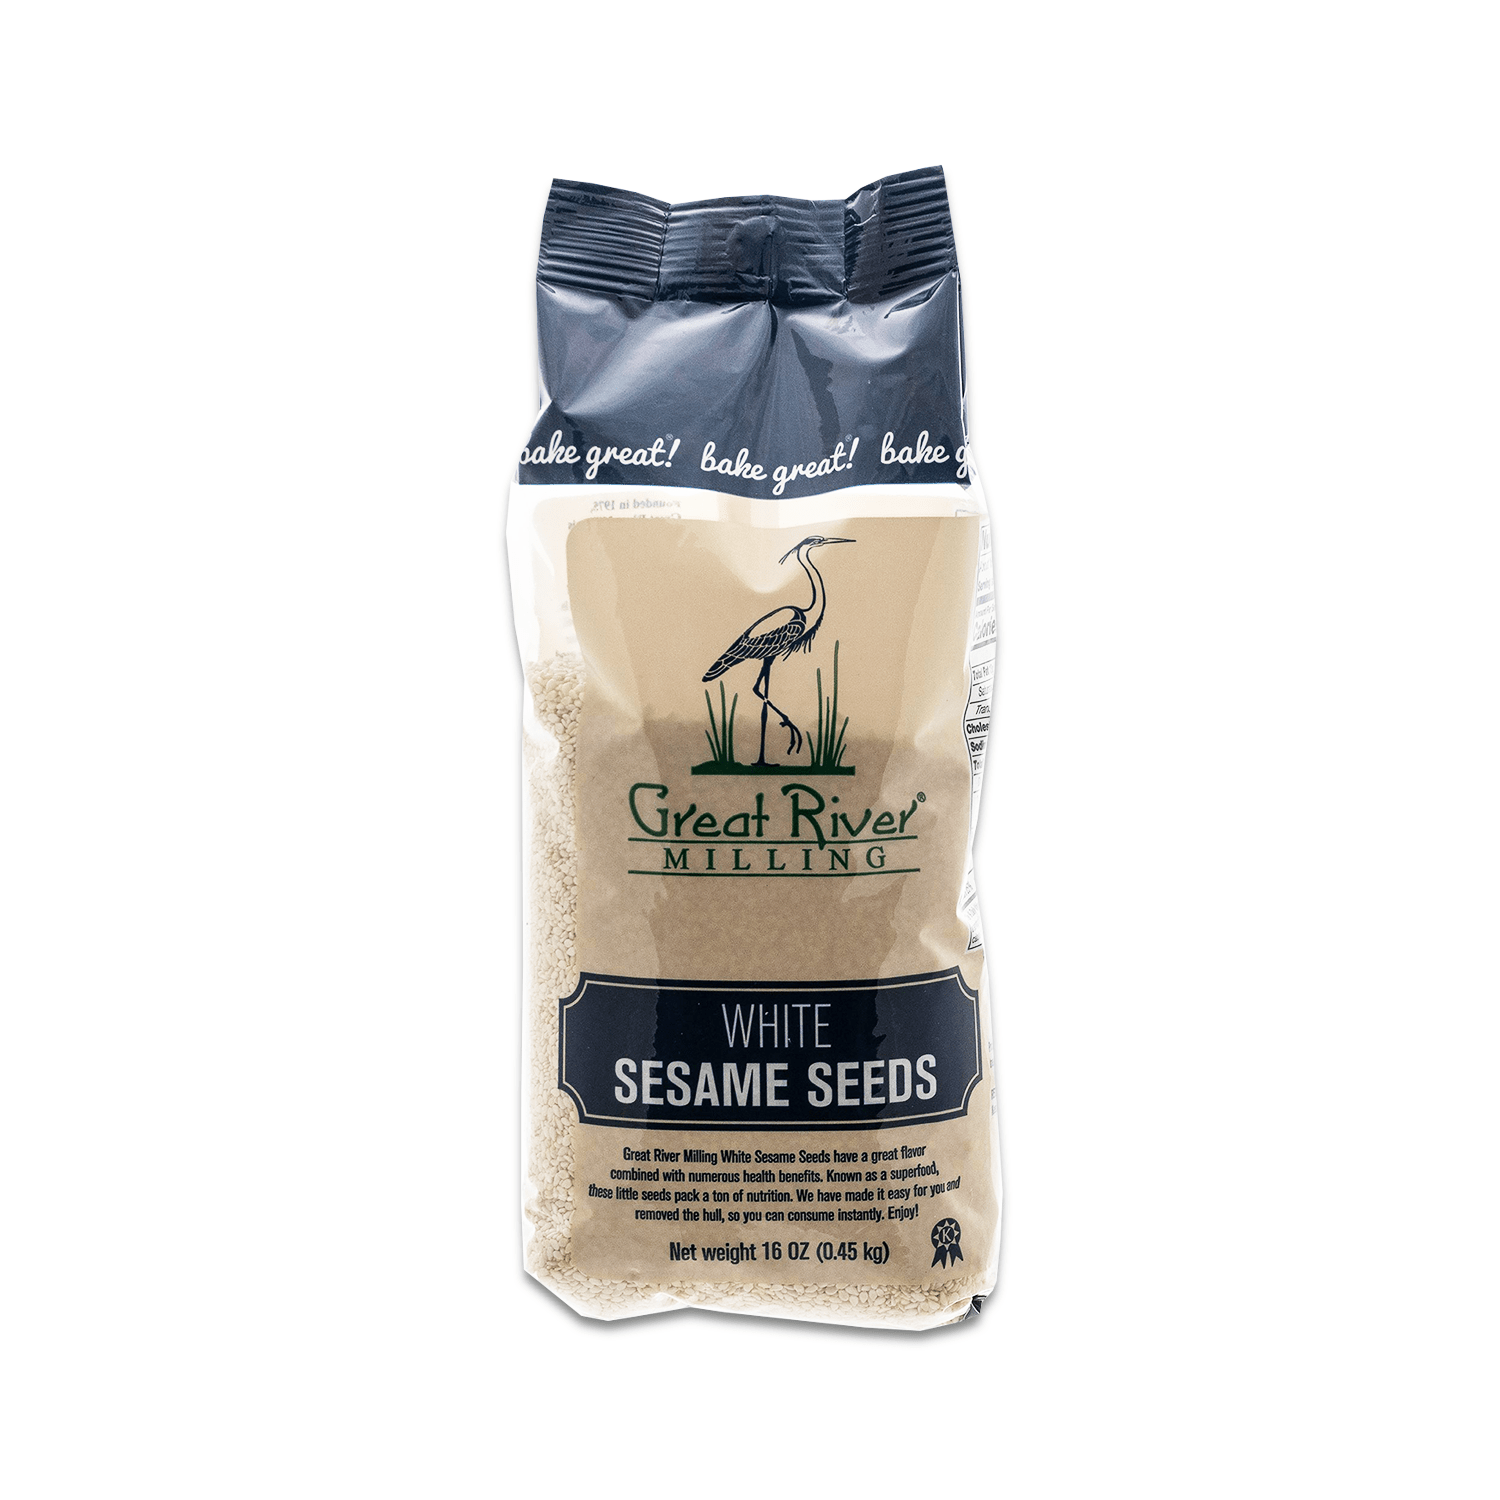 Great River Milling White Sesame Seeds